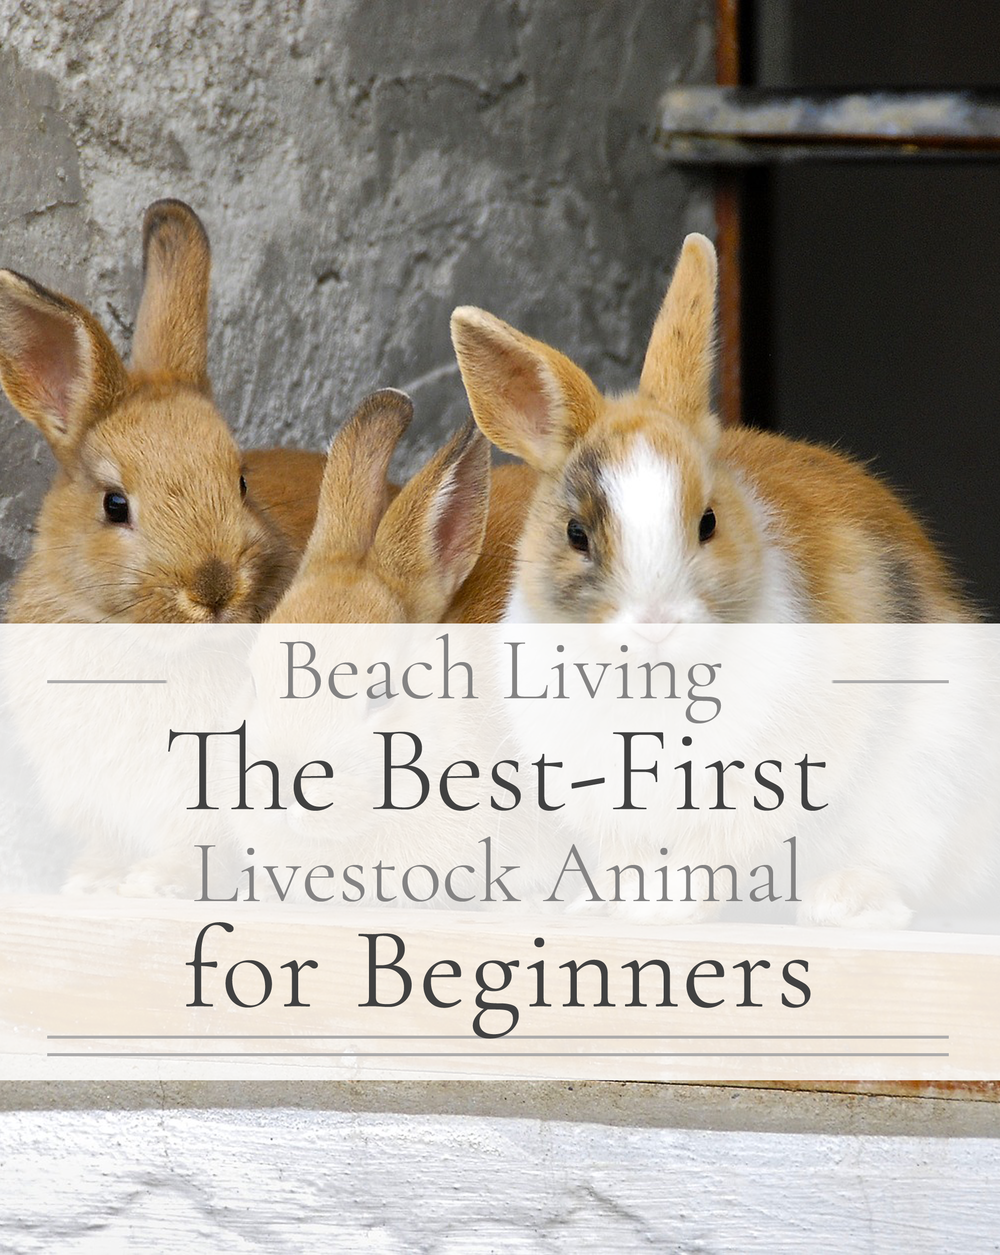 The best first livestock animal for beginners.png